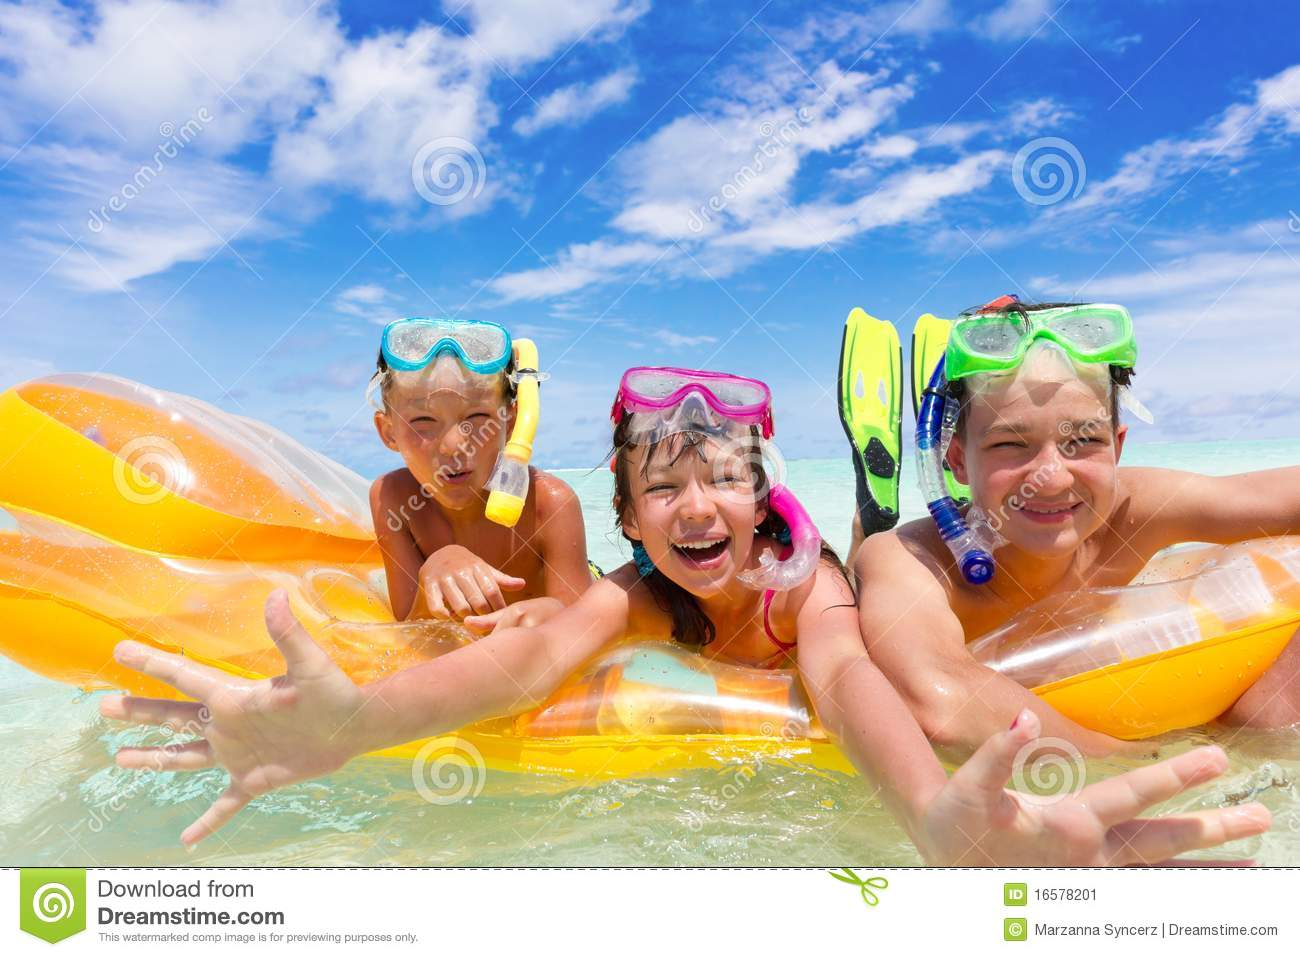 Three kids on a raft